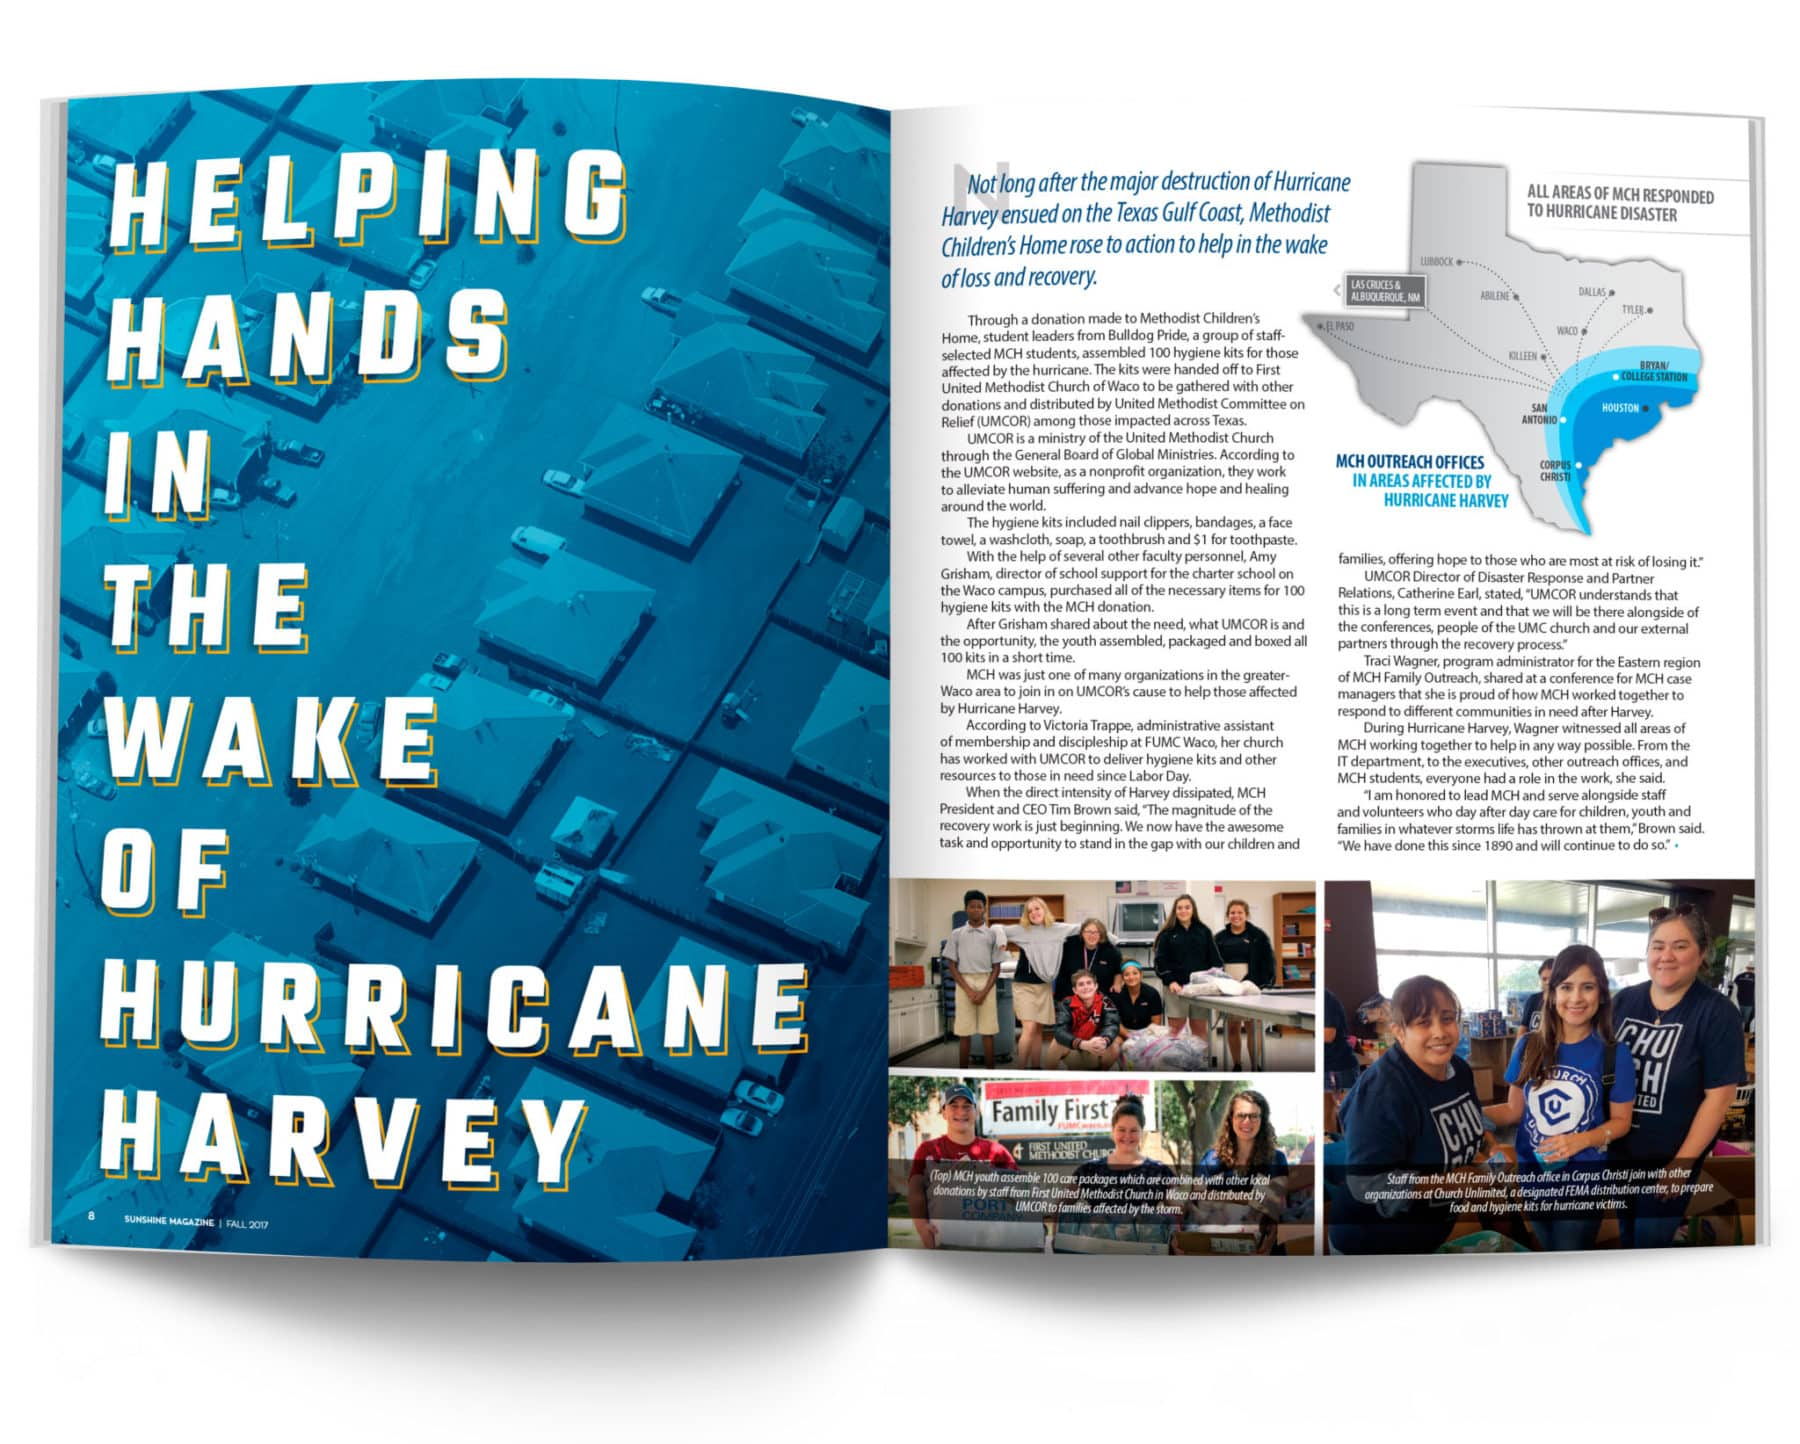 Magazine Spread - Helping Hands in the Wake of Hurricane Harvey